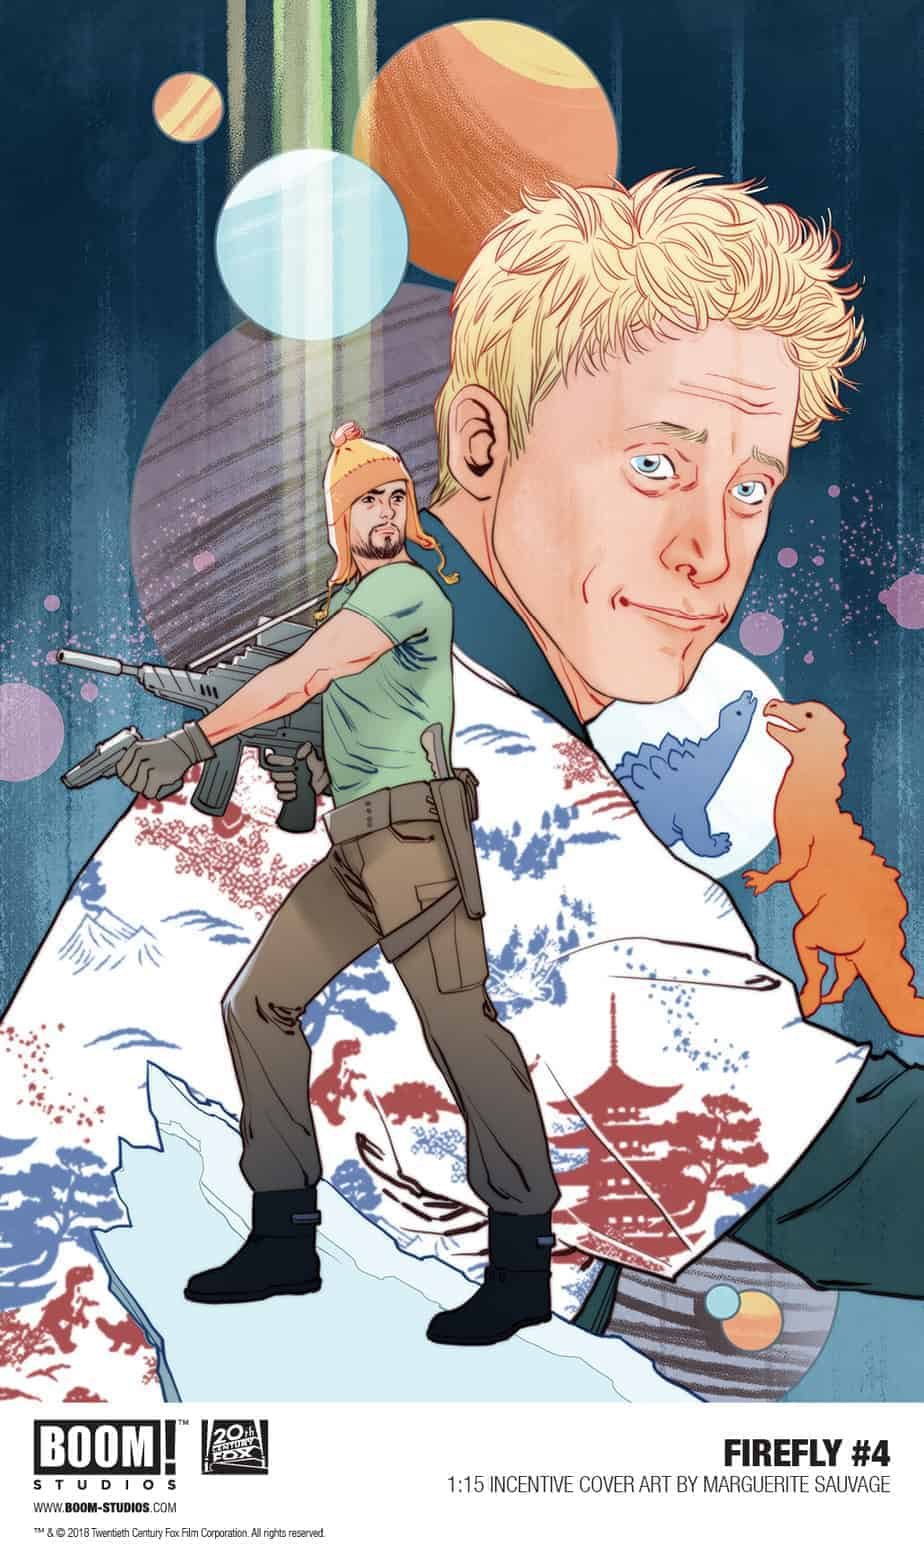 FIREFLY #4 - 1:15 Retailer Incentive Variant by Marguerite Sauvage